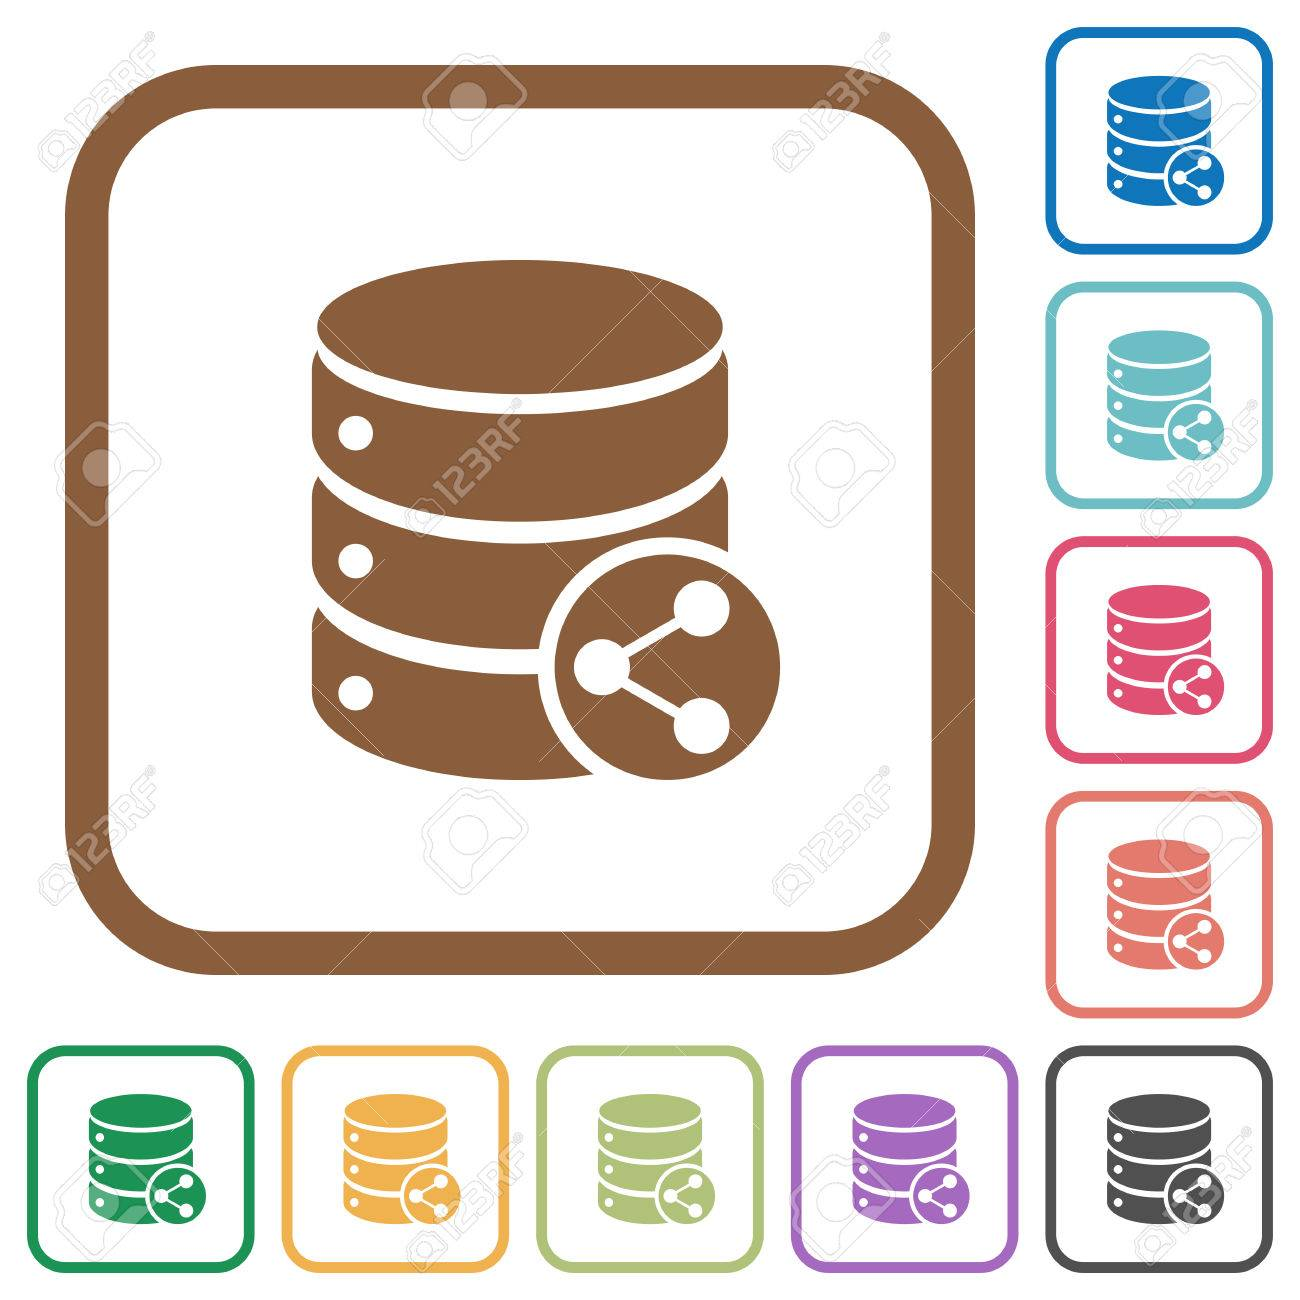 Simple table free other icons - Database Table Relations Simple Icons In Color Rounded Square Frames On White Background Stock Vector